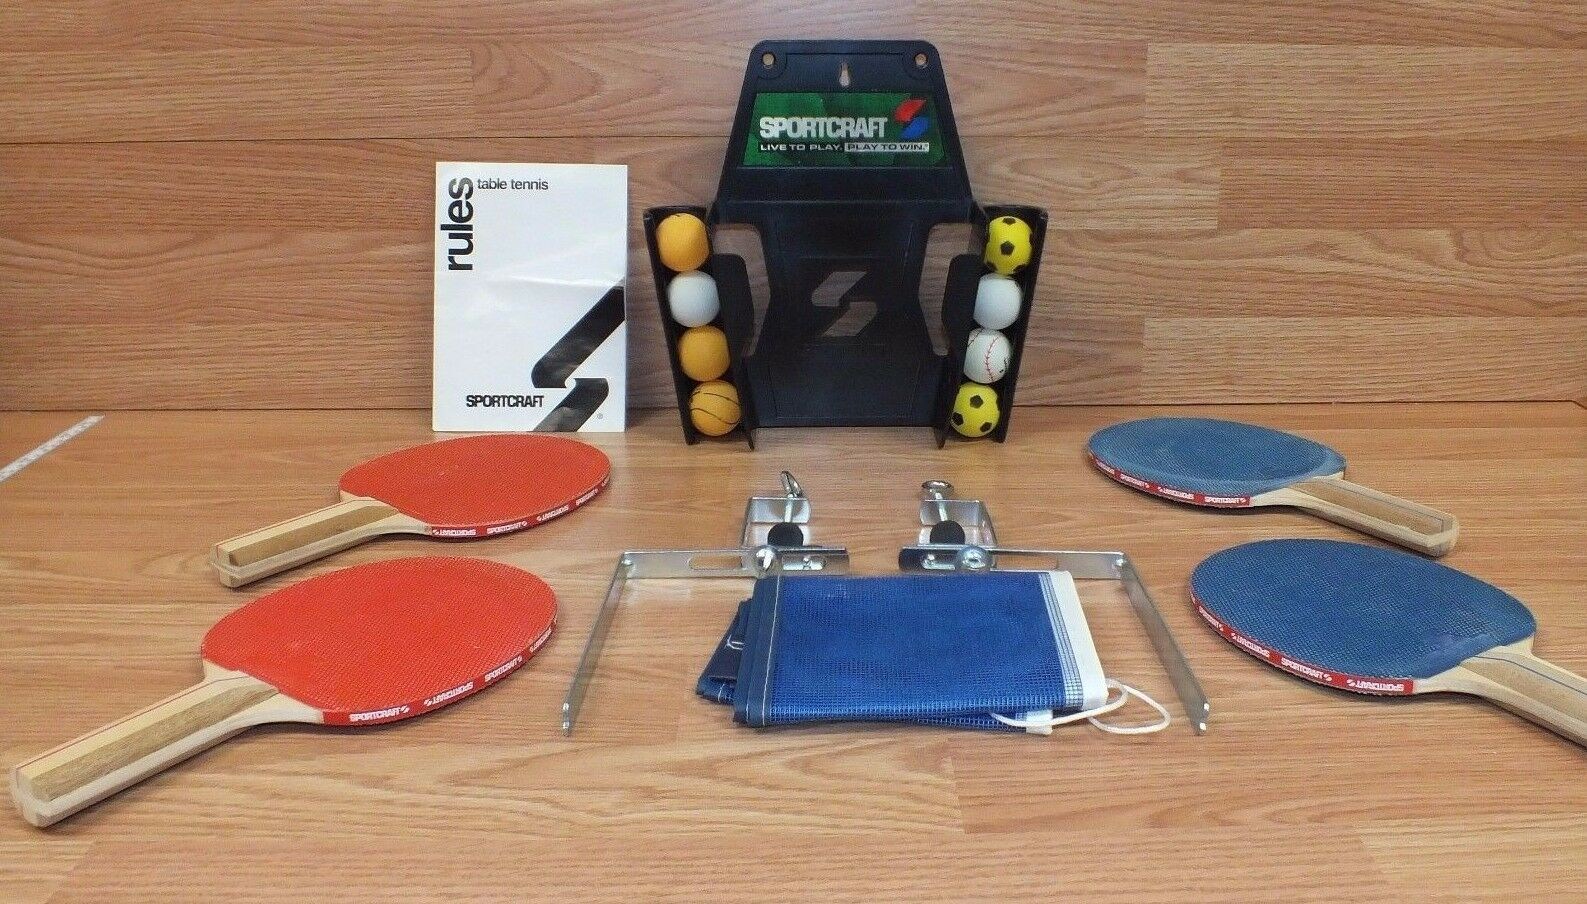 Sportcraft 4 Player Table Tennis Ping Pong Paddle 8 Balls Net Post ...